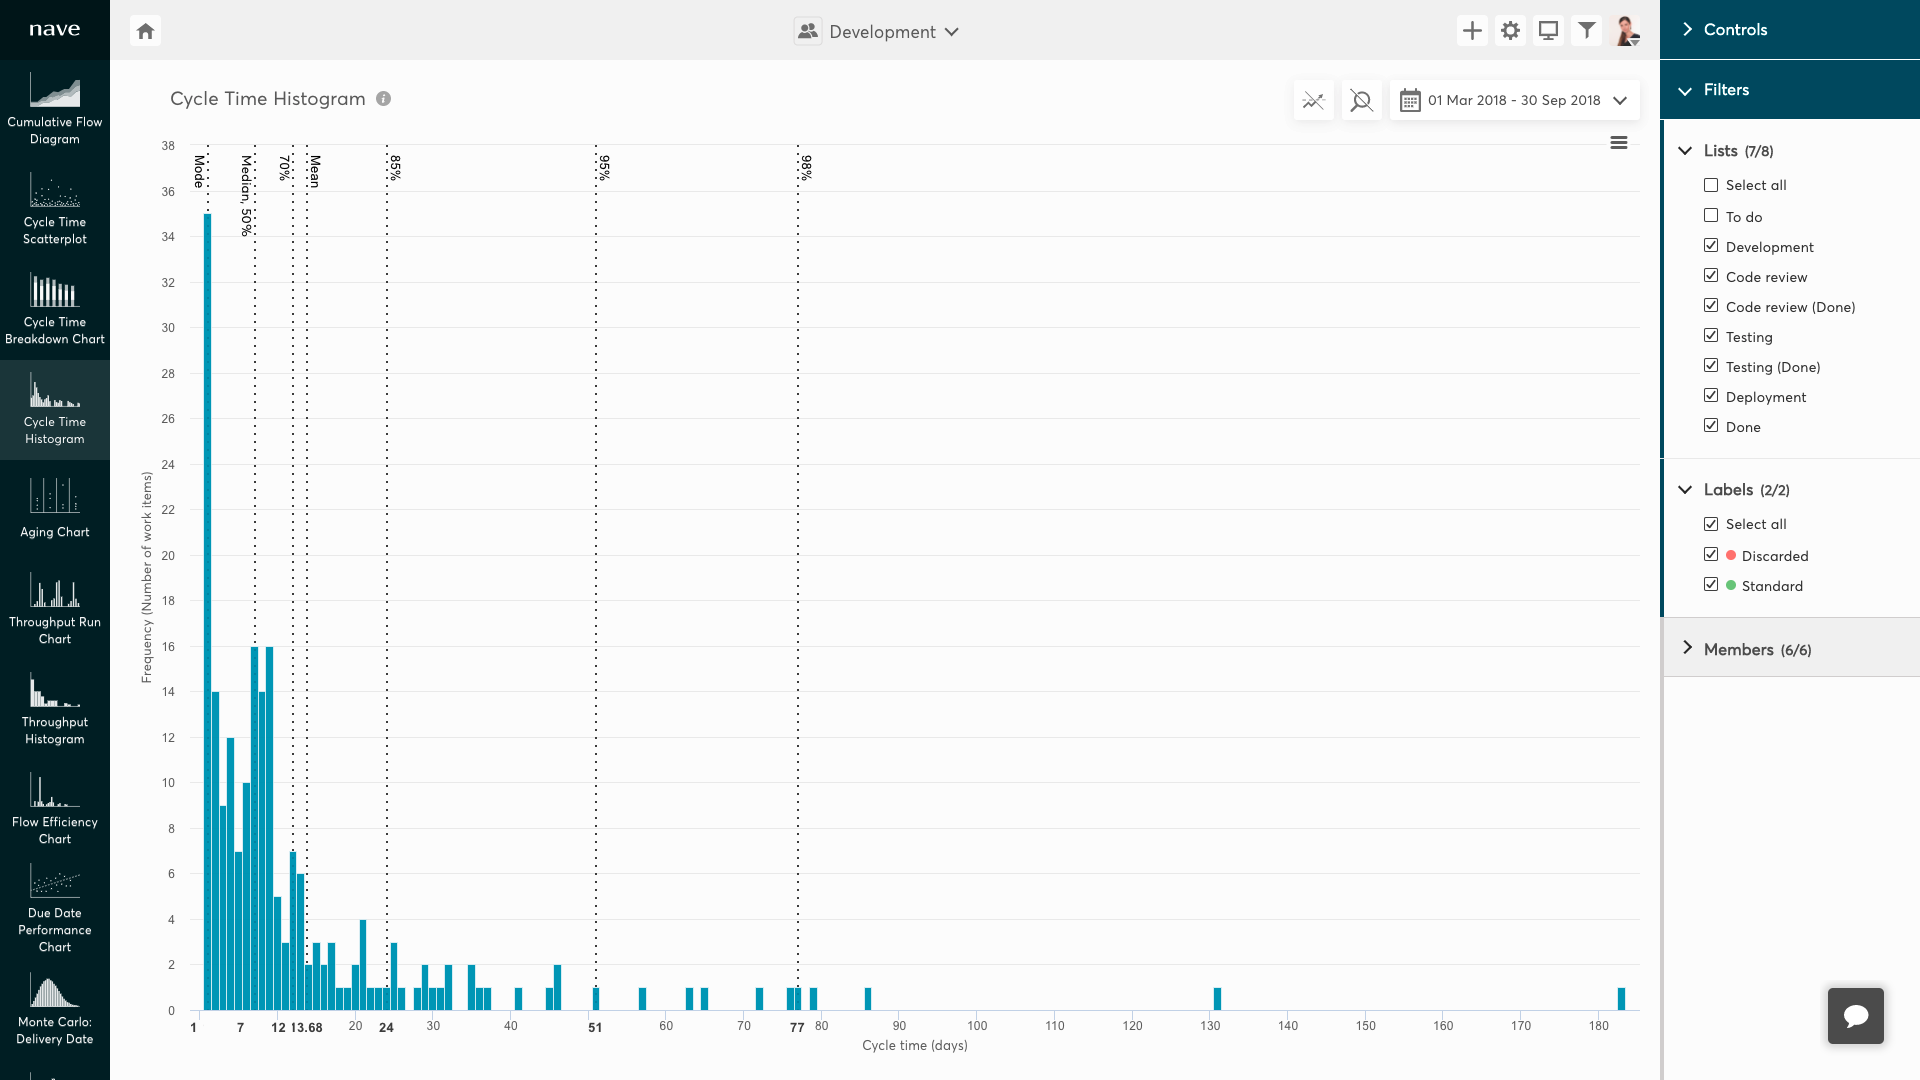 Cycle Time Histogram with abandoned work